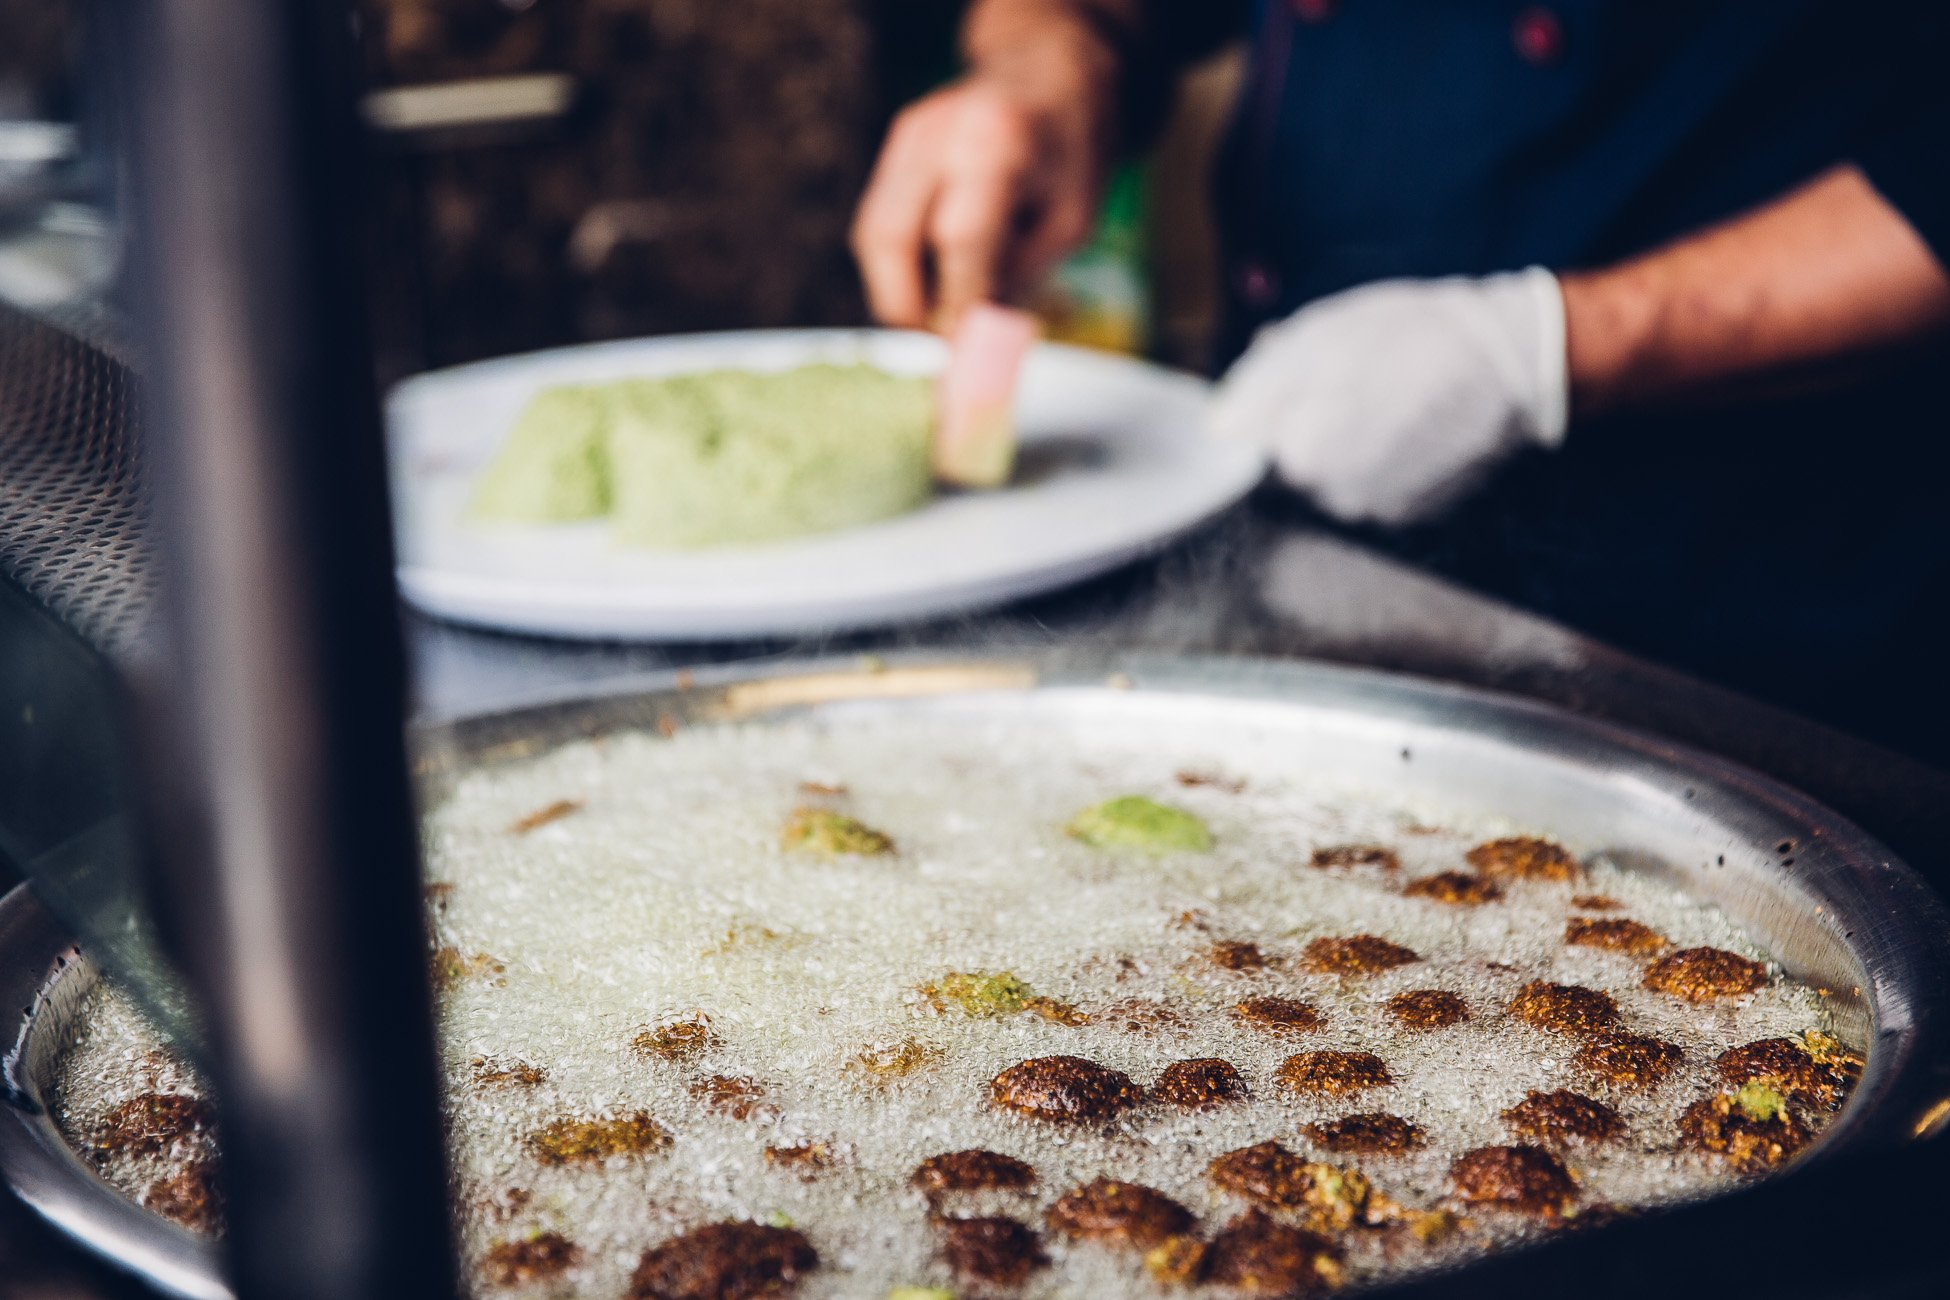 Eat Falafel at Al Quds during 24 hours in Amman